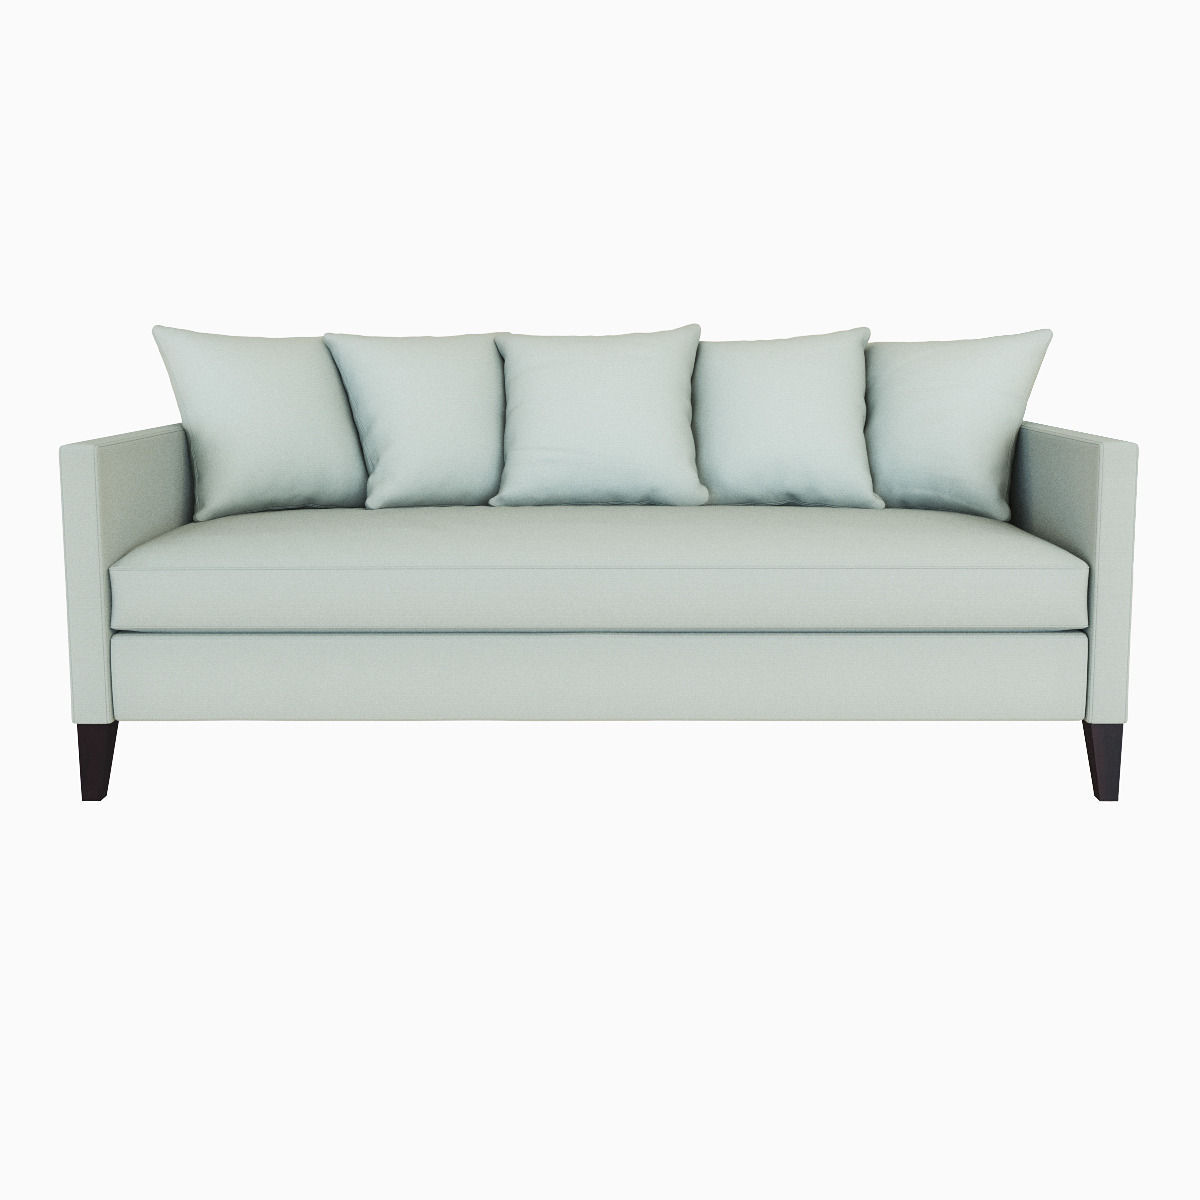 west elm dunham sofa reviews and loveseat slipcover down filled cushions harvey probber mohair